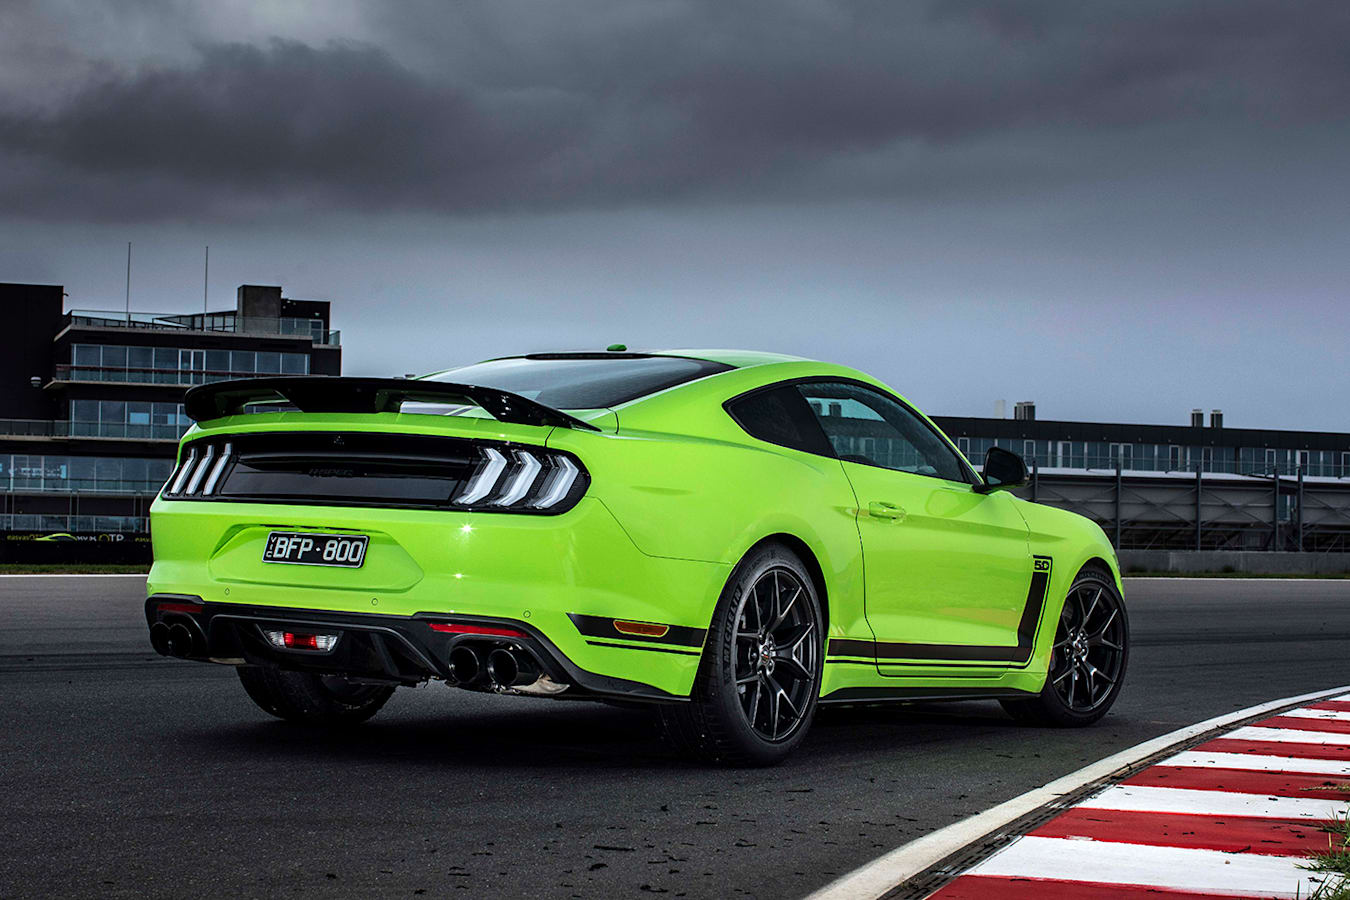 Ford Mustang R-Spec track test